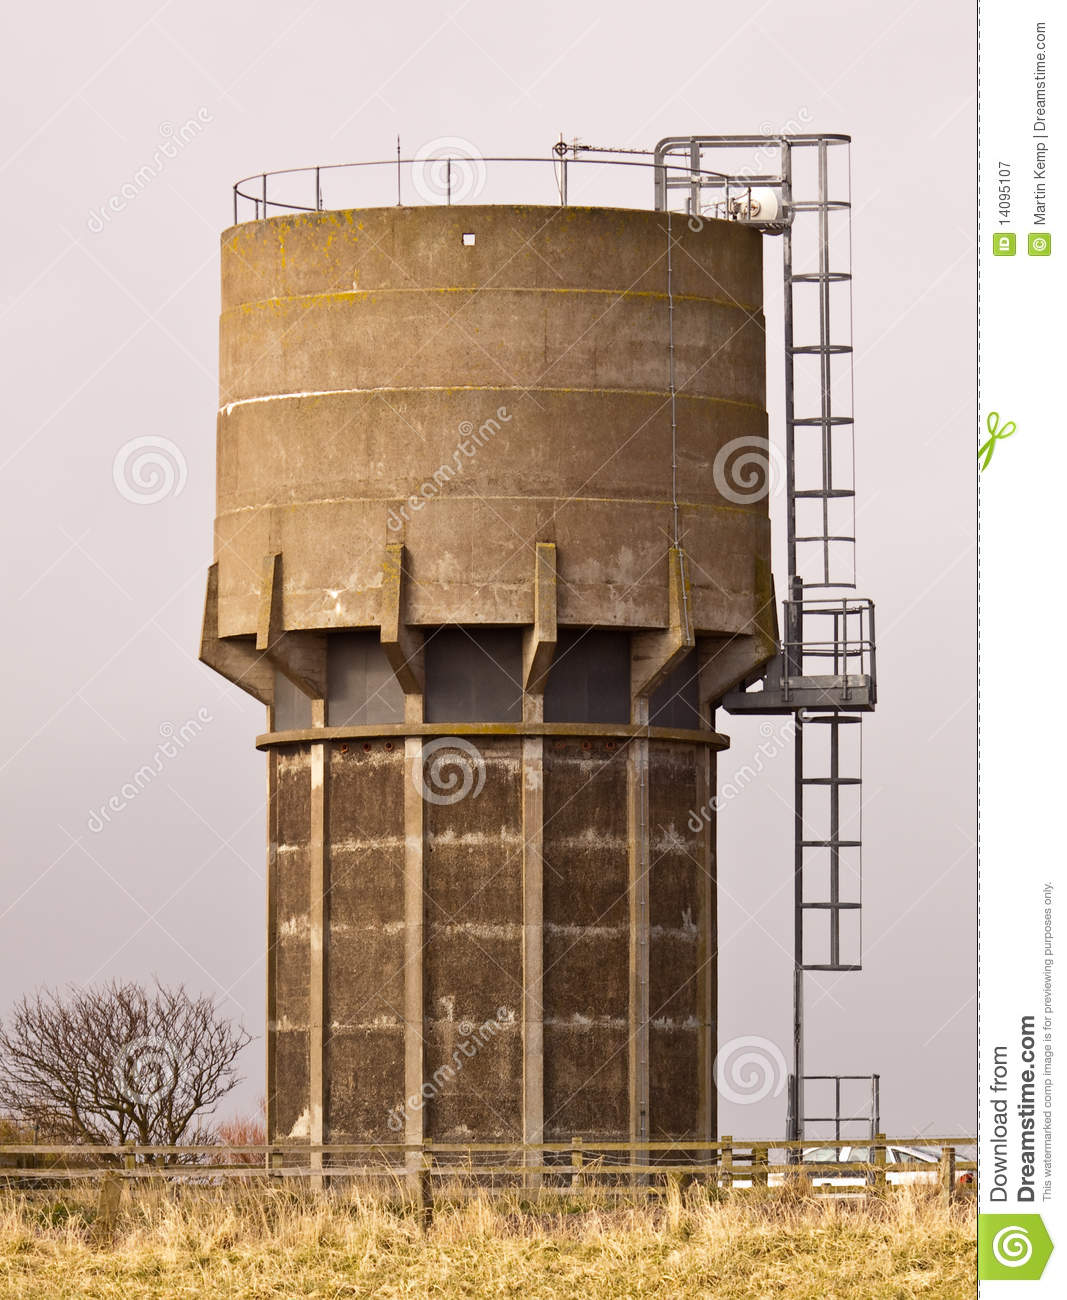 Concrete Water Tower stock image  Image of northumberland